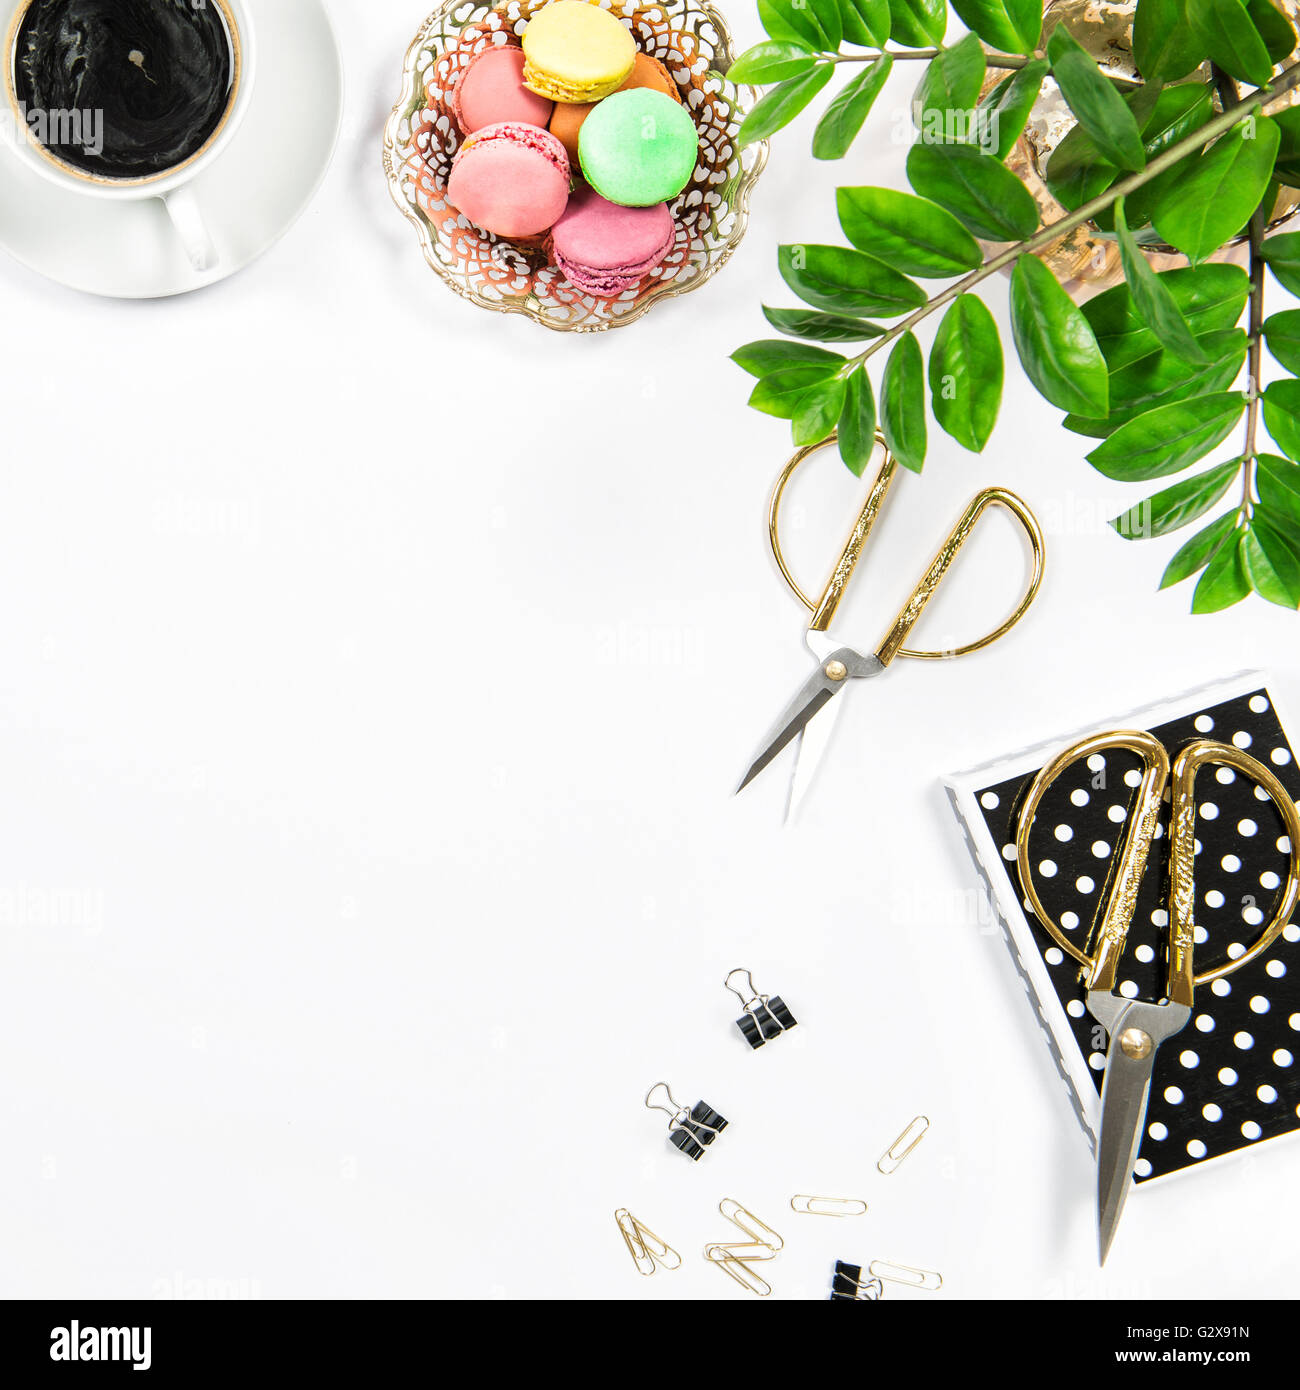 Feminine Workplace With Coffee, Macarons Cookies, Office Supplies And Green  Plant On White Table Background. Flat Lay